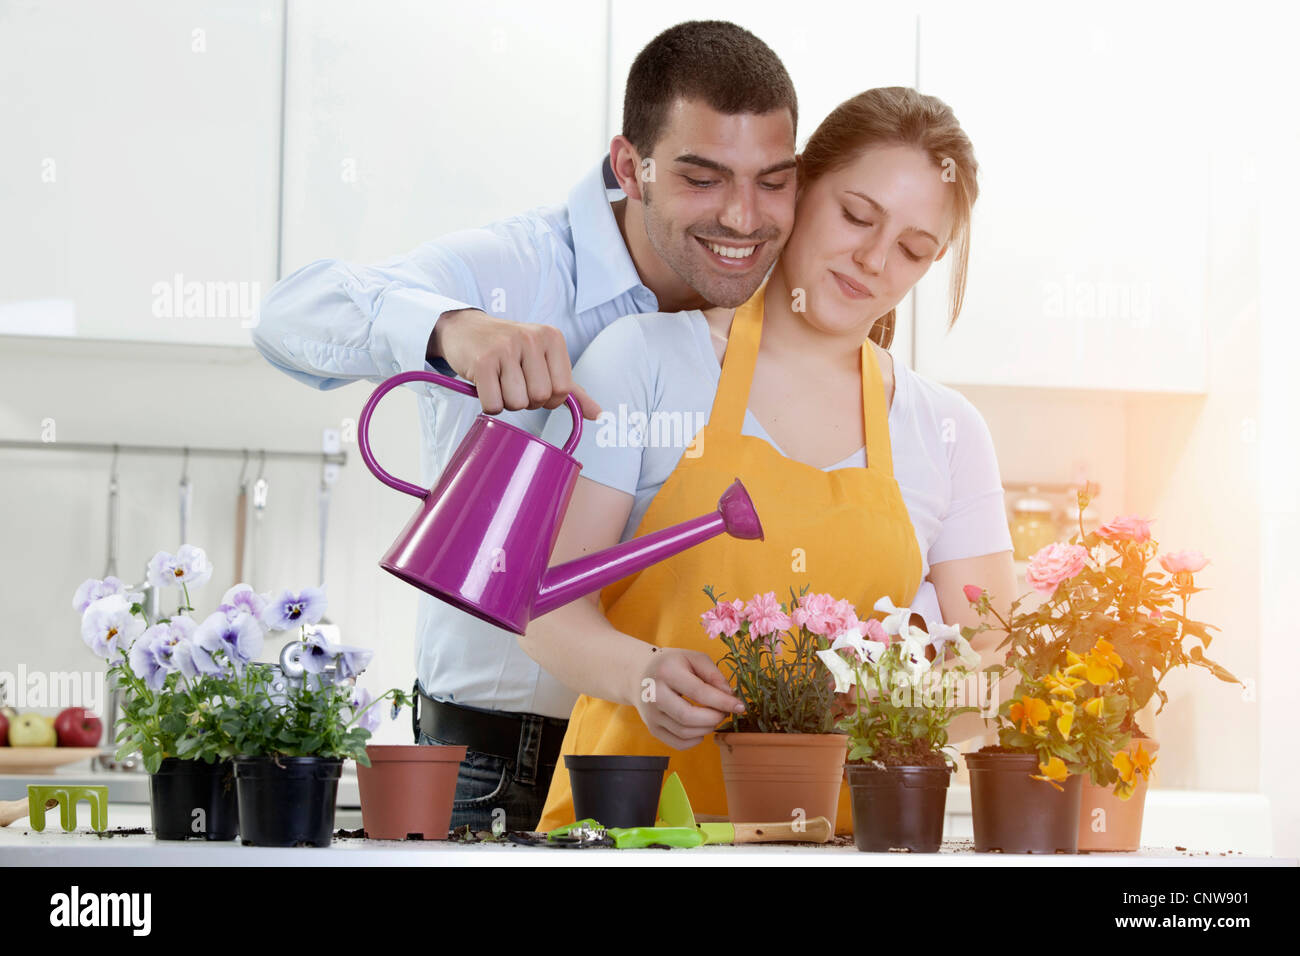 Couple watering potted plants indoors - Stock Image